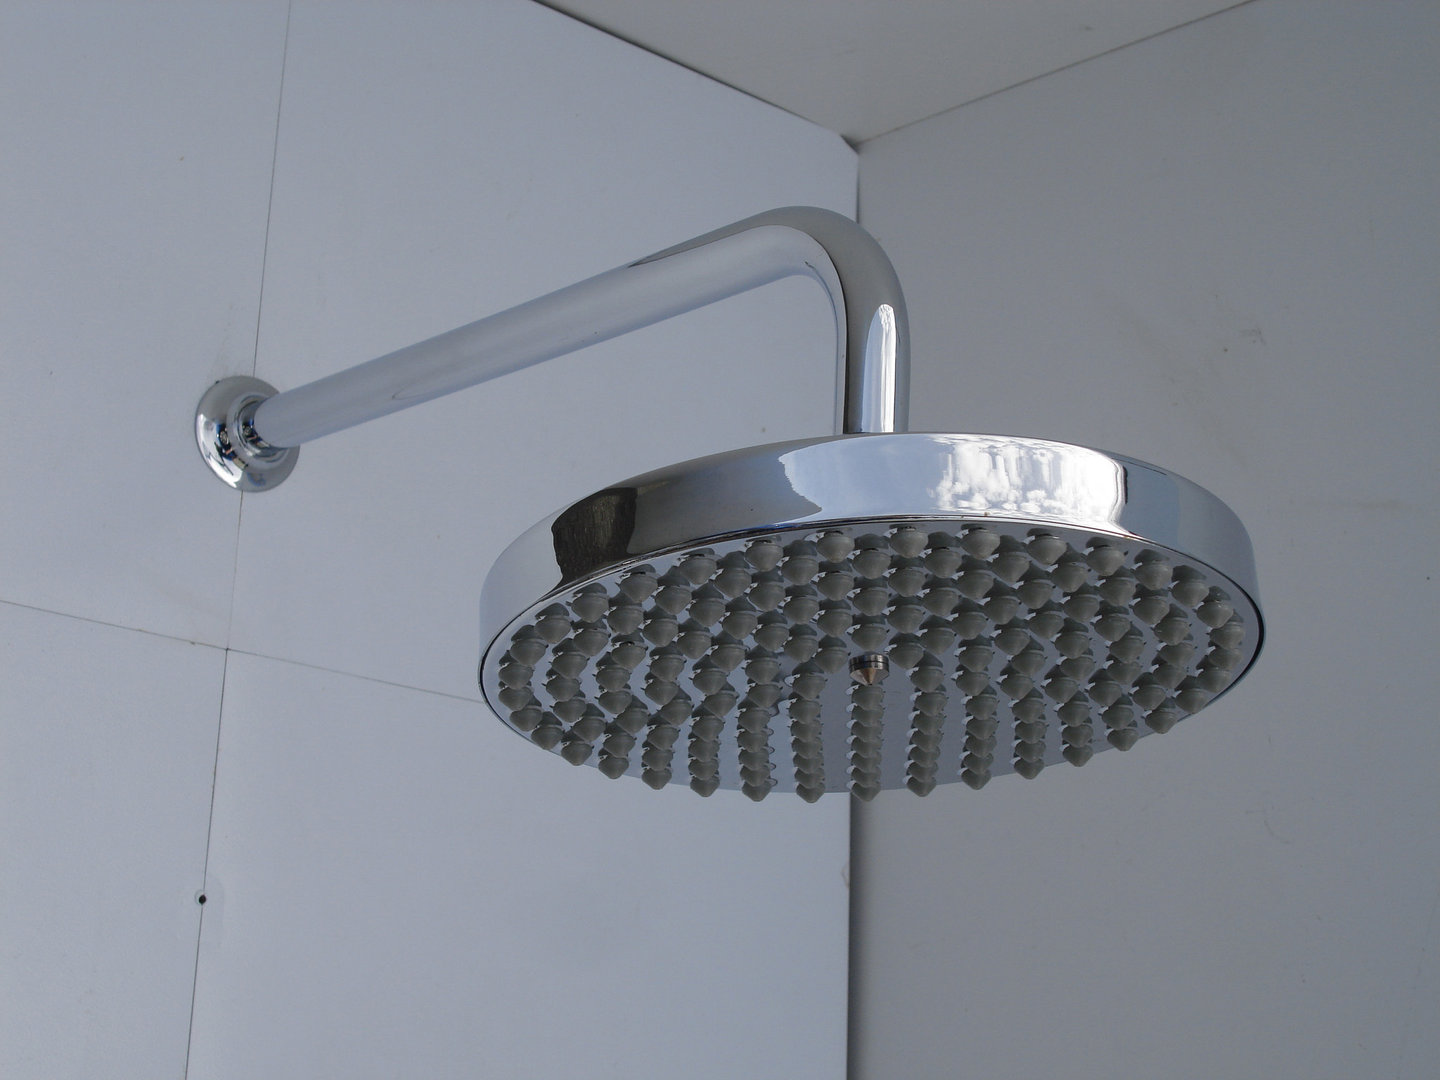 Ordinaire ... TWO WAY DUAL FUNCTION THERMOSTATIC RAIN SHOWER SET ...